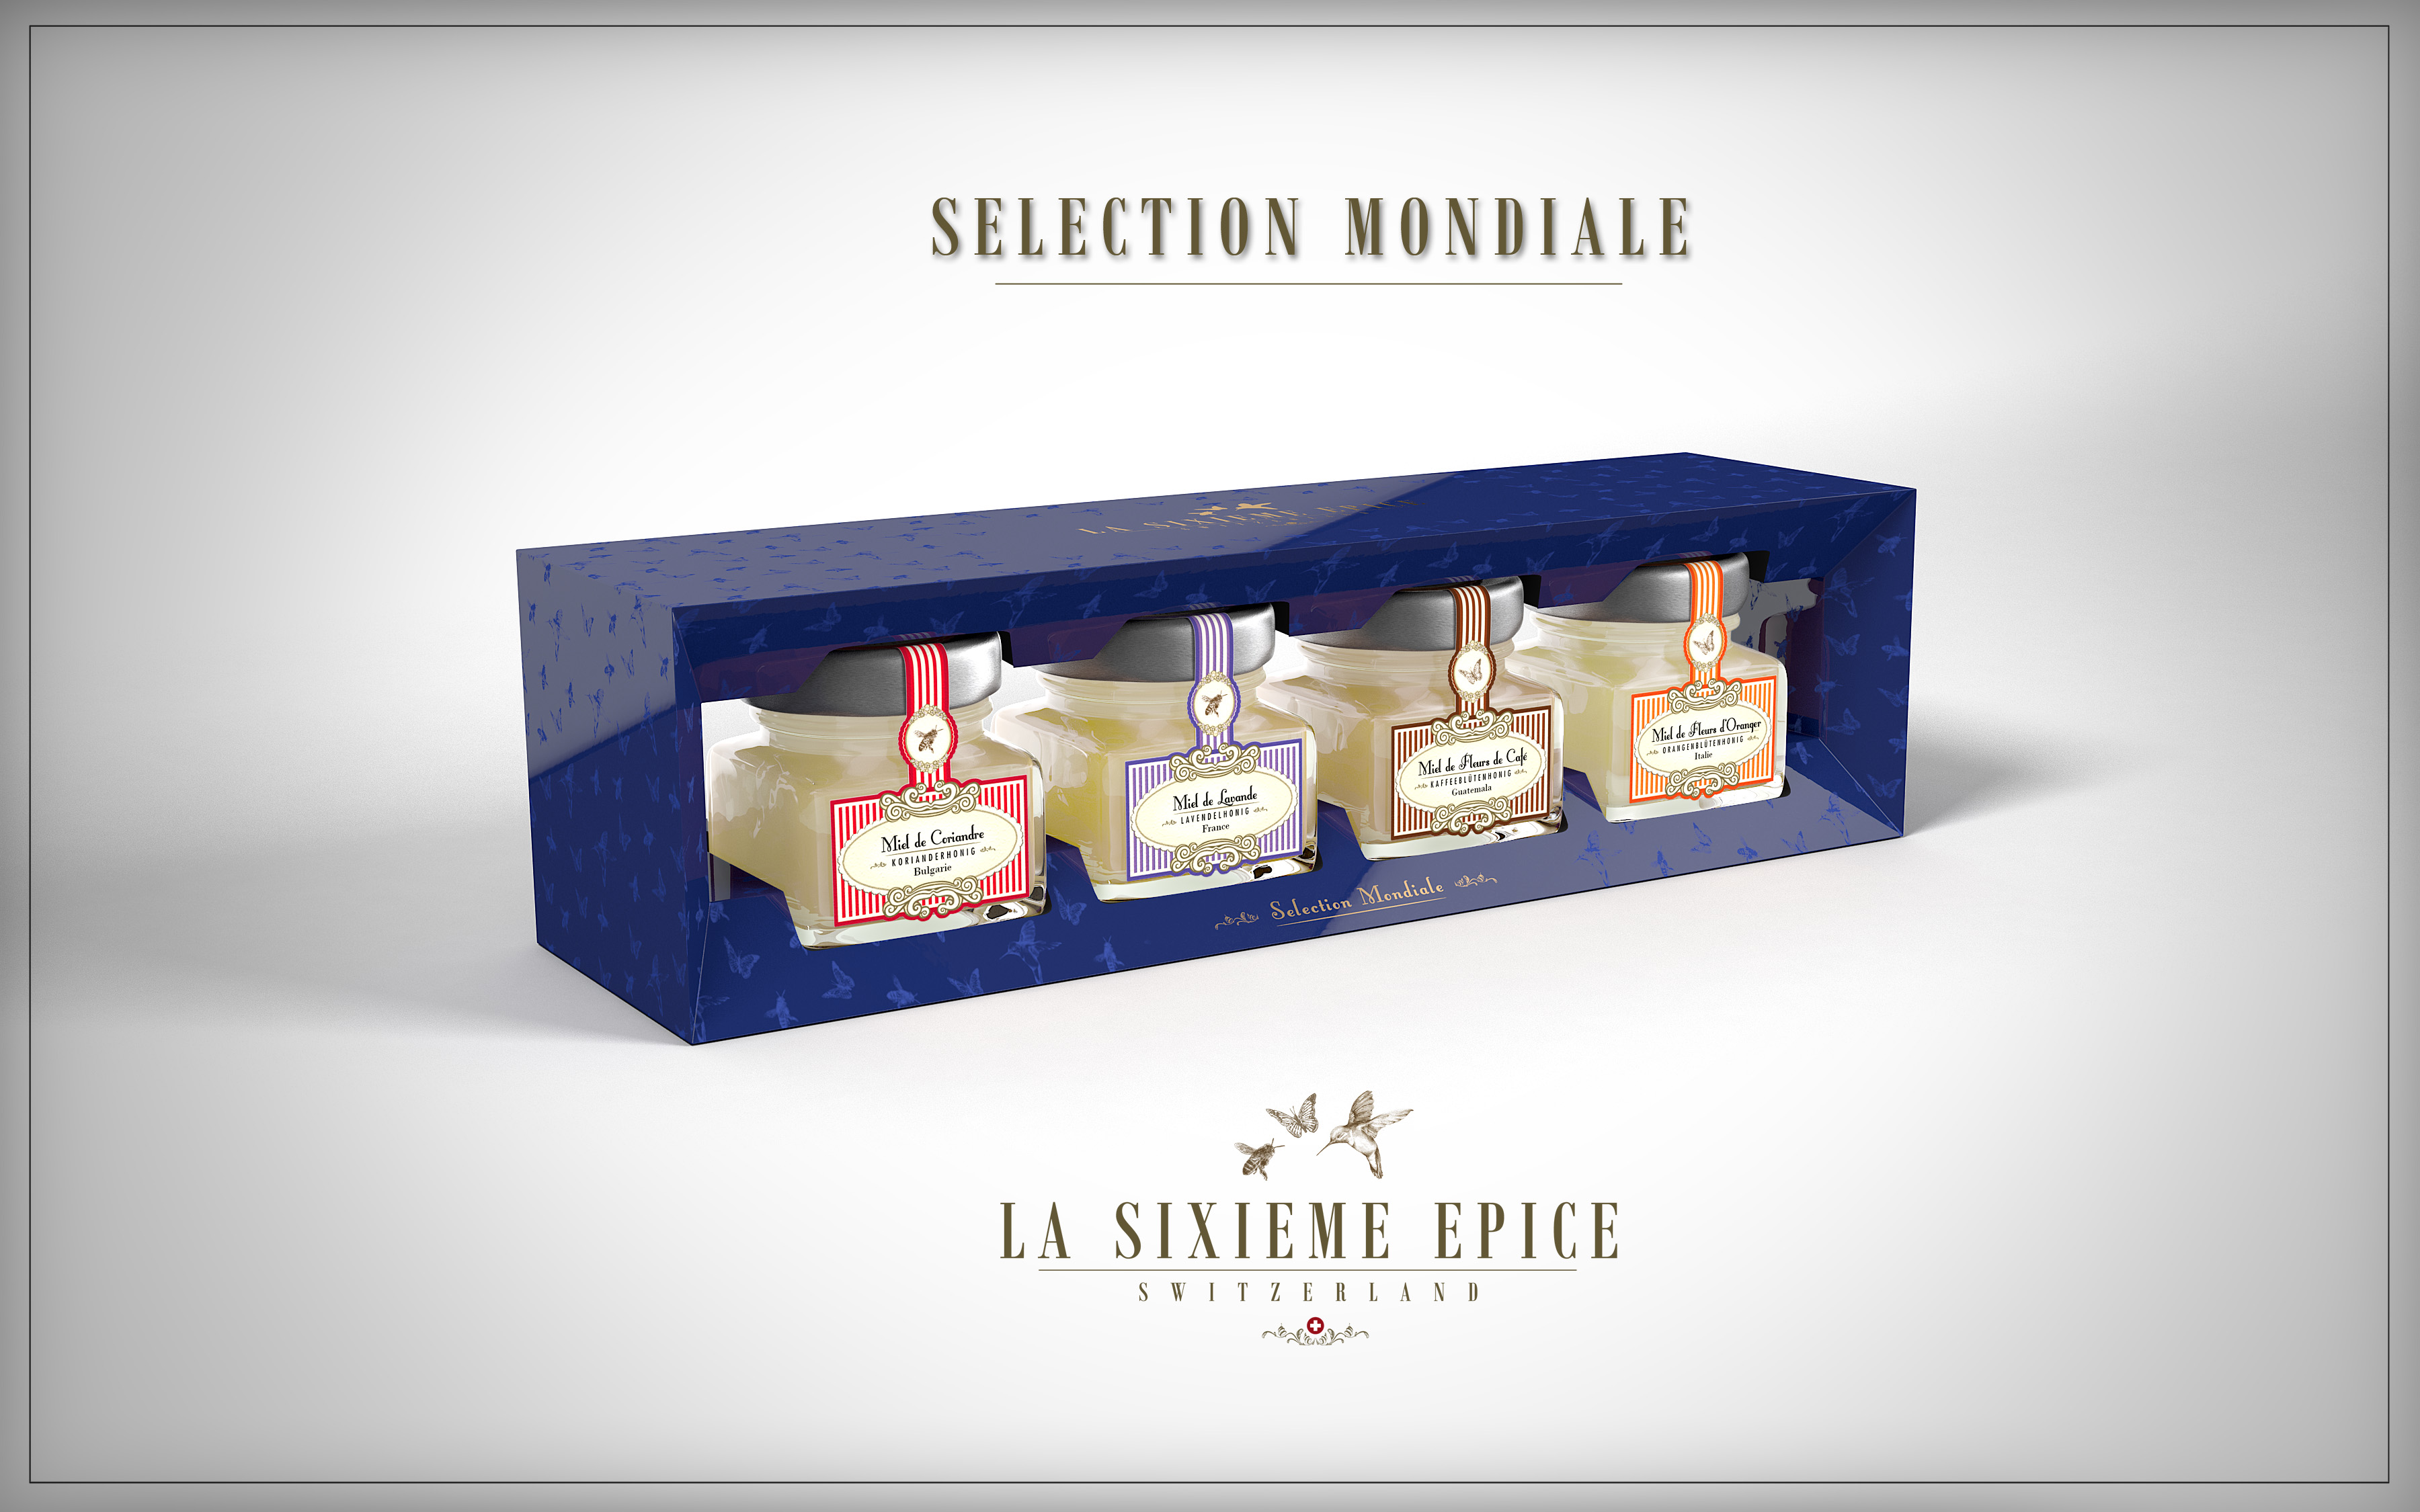 duty_free_grandcru_groß_3k duty_free_mondiale_klein_3k duty_free ...: www.pm-3d.com/index.php/archives/gallery/honey-packaging